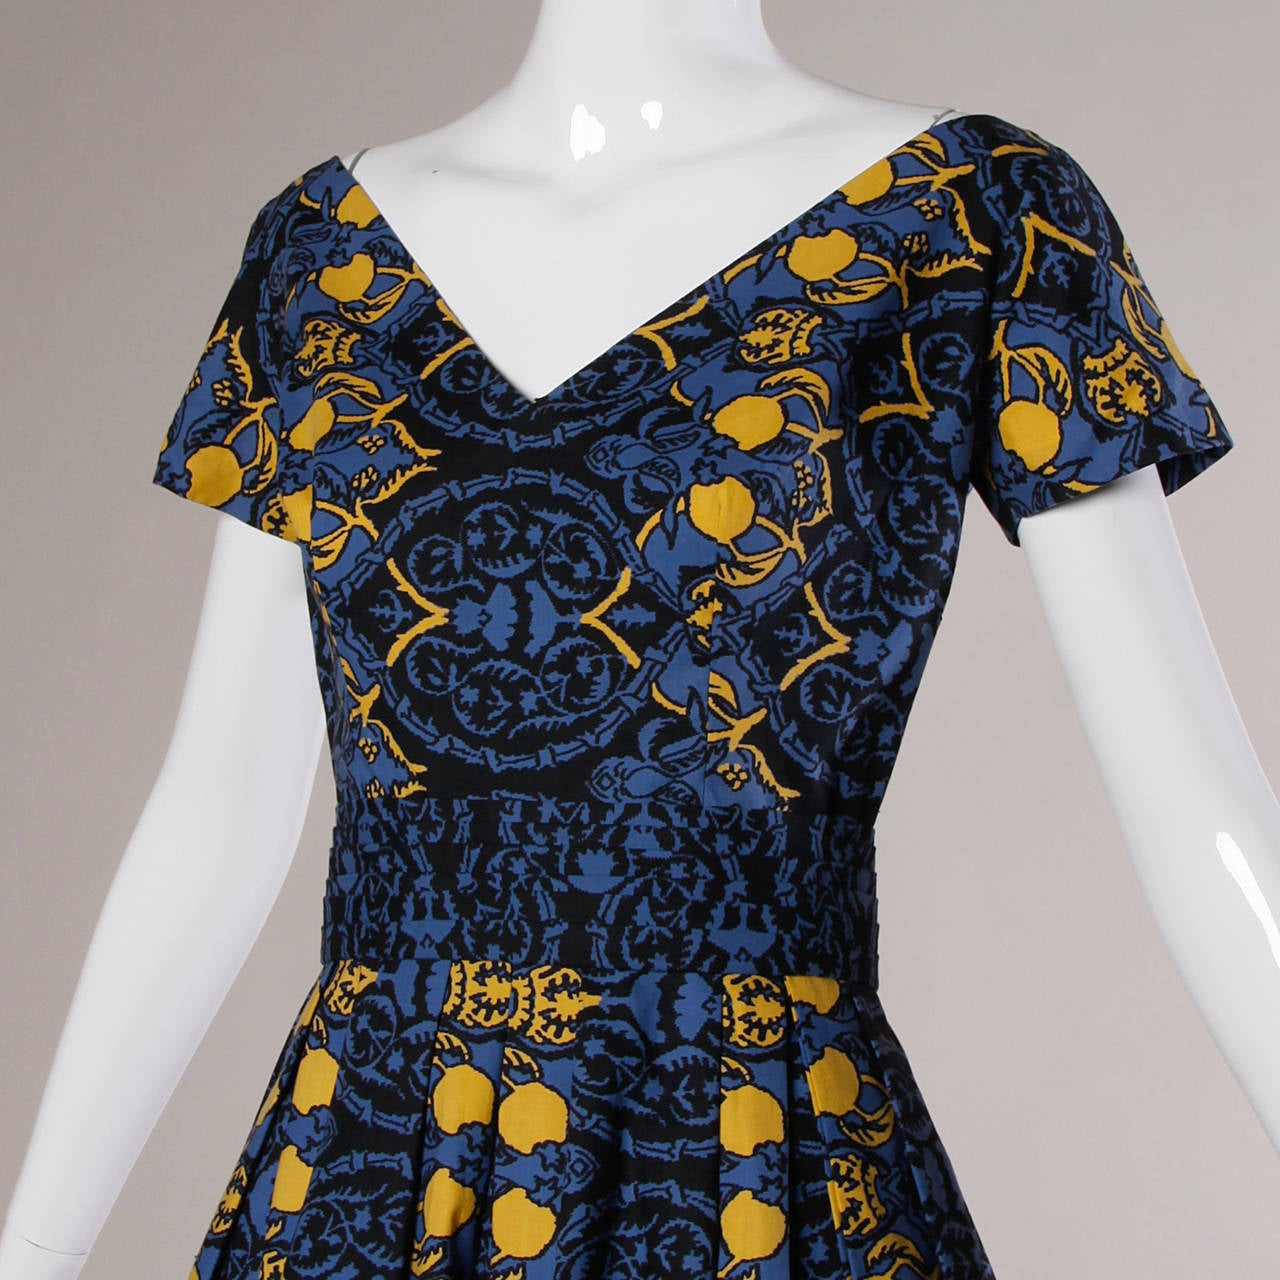 1950s Vintage French Custom Provincial Printed Cotton Dress 2